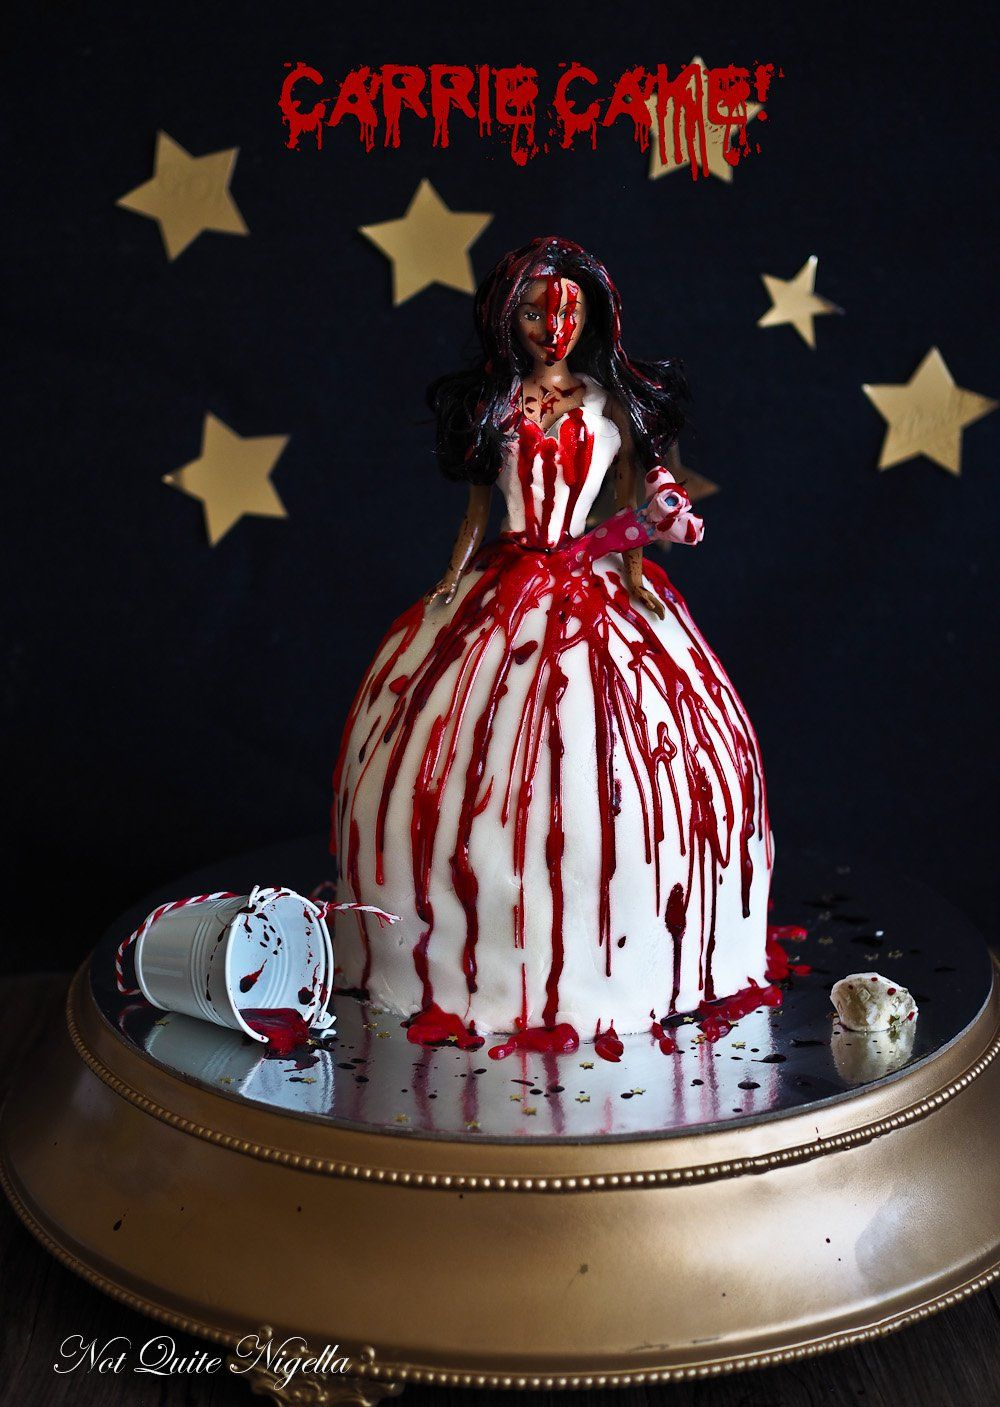 Pleasant Carrie A Halloween Dolly Varden Cake From The Dark Side Video Personalised Birthday Cards Epsylily Jamesorg